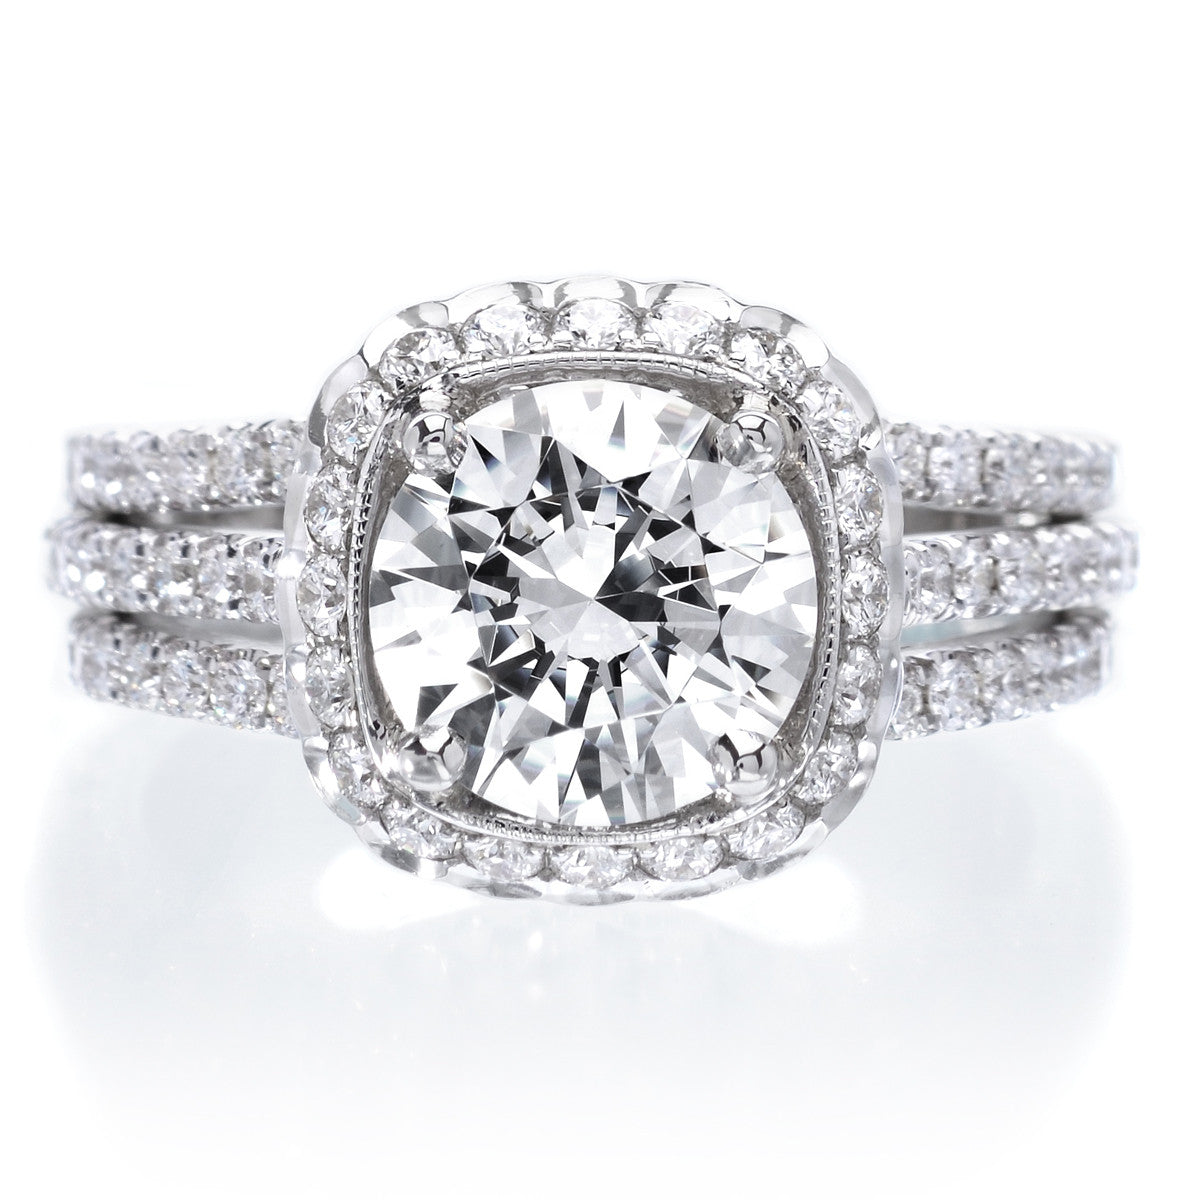 18K White Gold Three Row Diamond Halo Engagement Ring